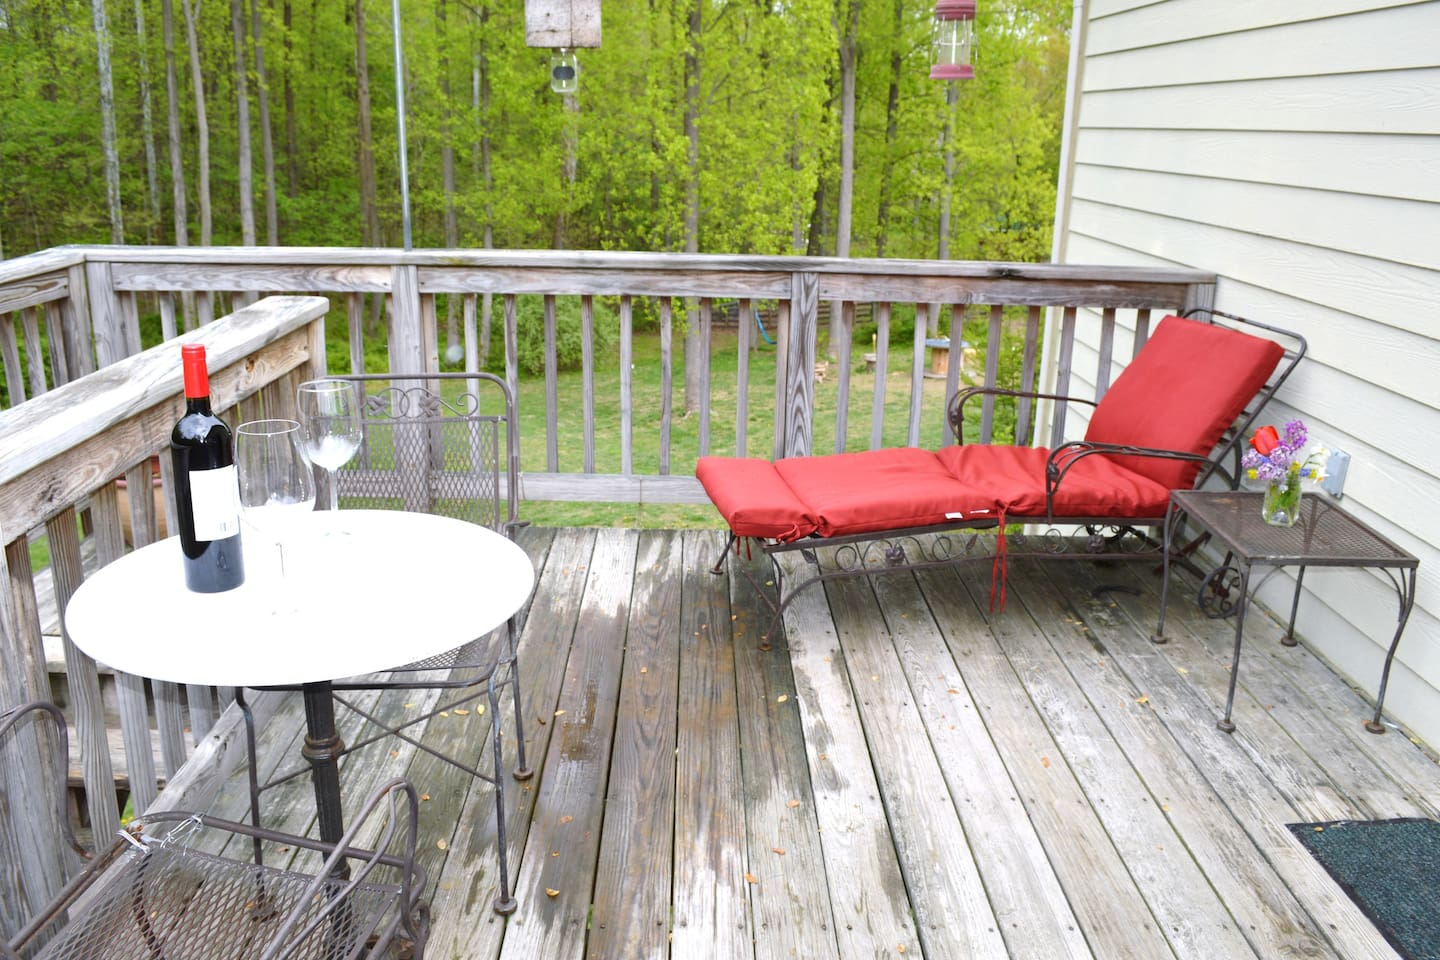 Relax on the private deck and enjoy the back yard views and sounds of nature.